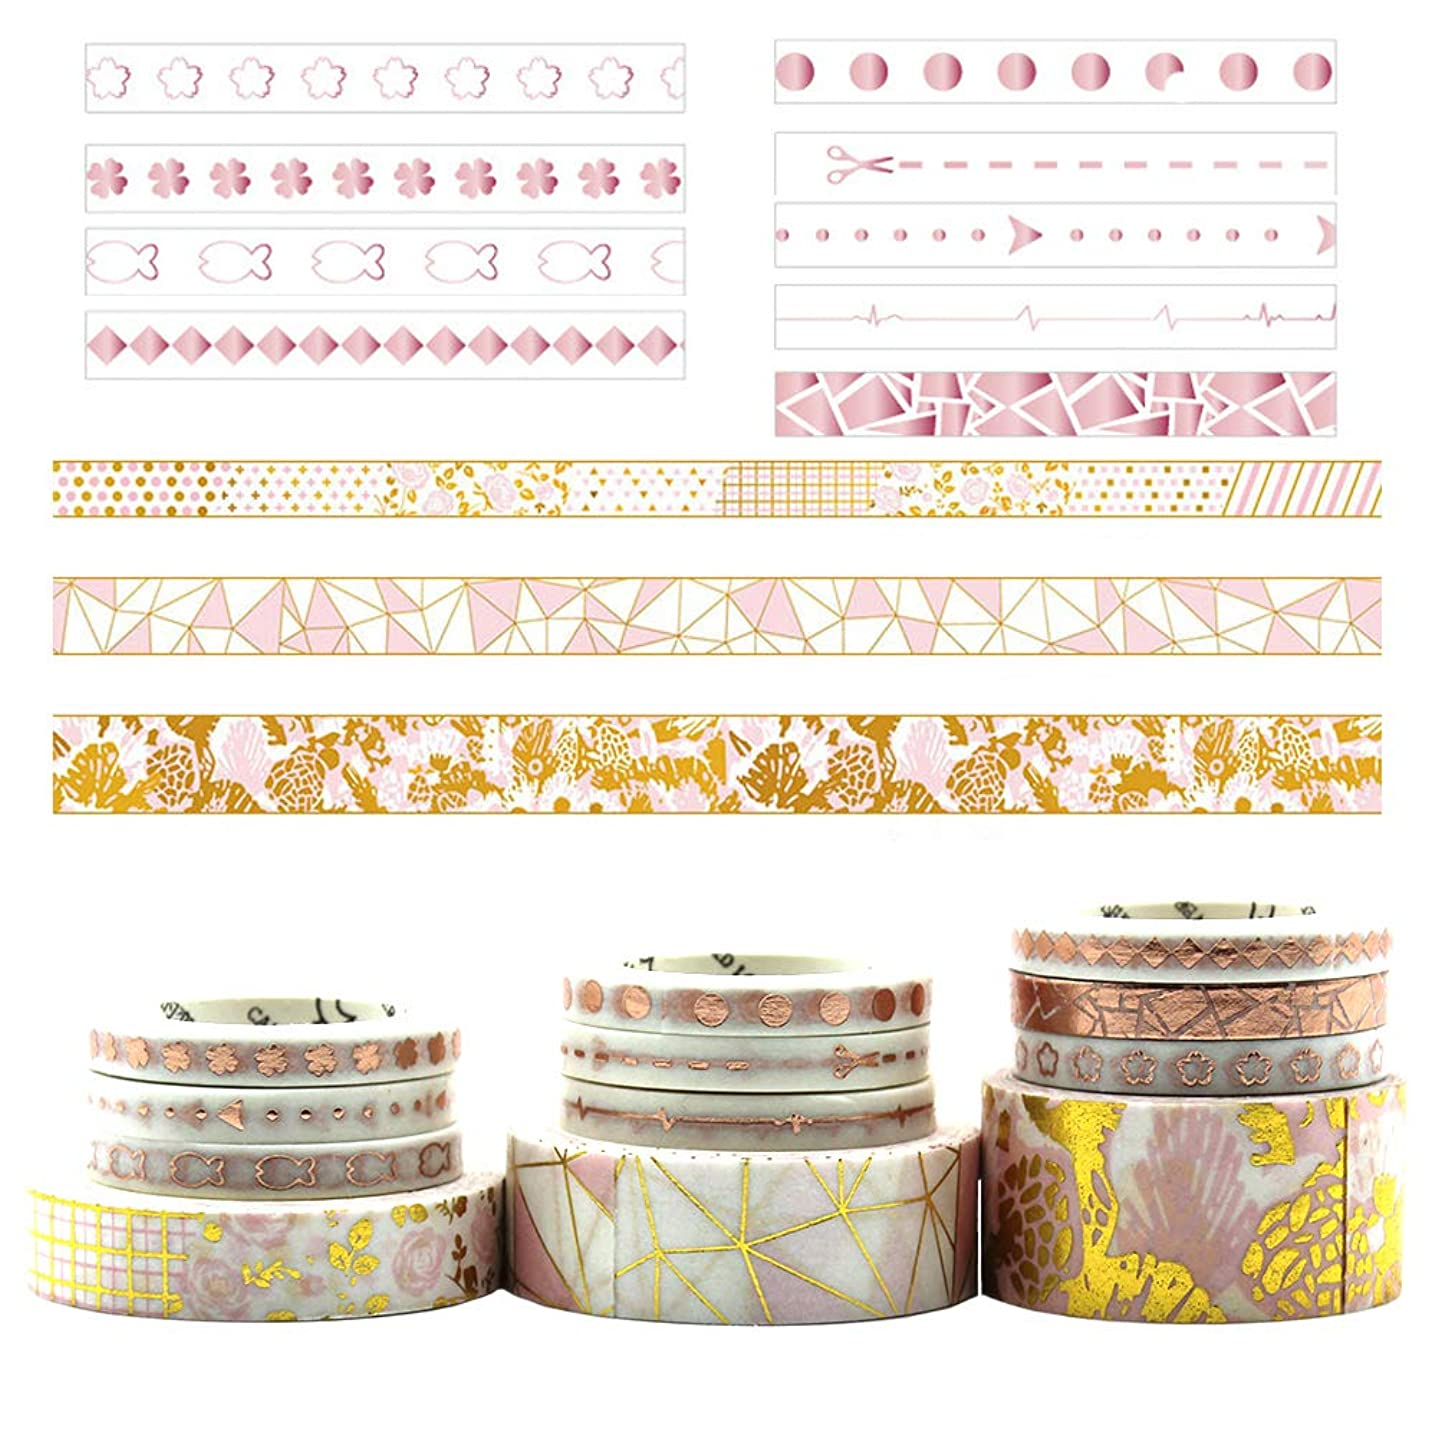 Valentine's Day Gifts SUBCLUSTER Set of 12,Rose Gold Foil Washi Tape Set Gold Stickers Collection for DIY Scrapbooking Bullet Journal, Planner, Arts & Craft Gift Wrapping Tapes 12 Rolls